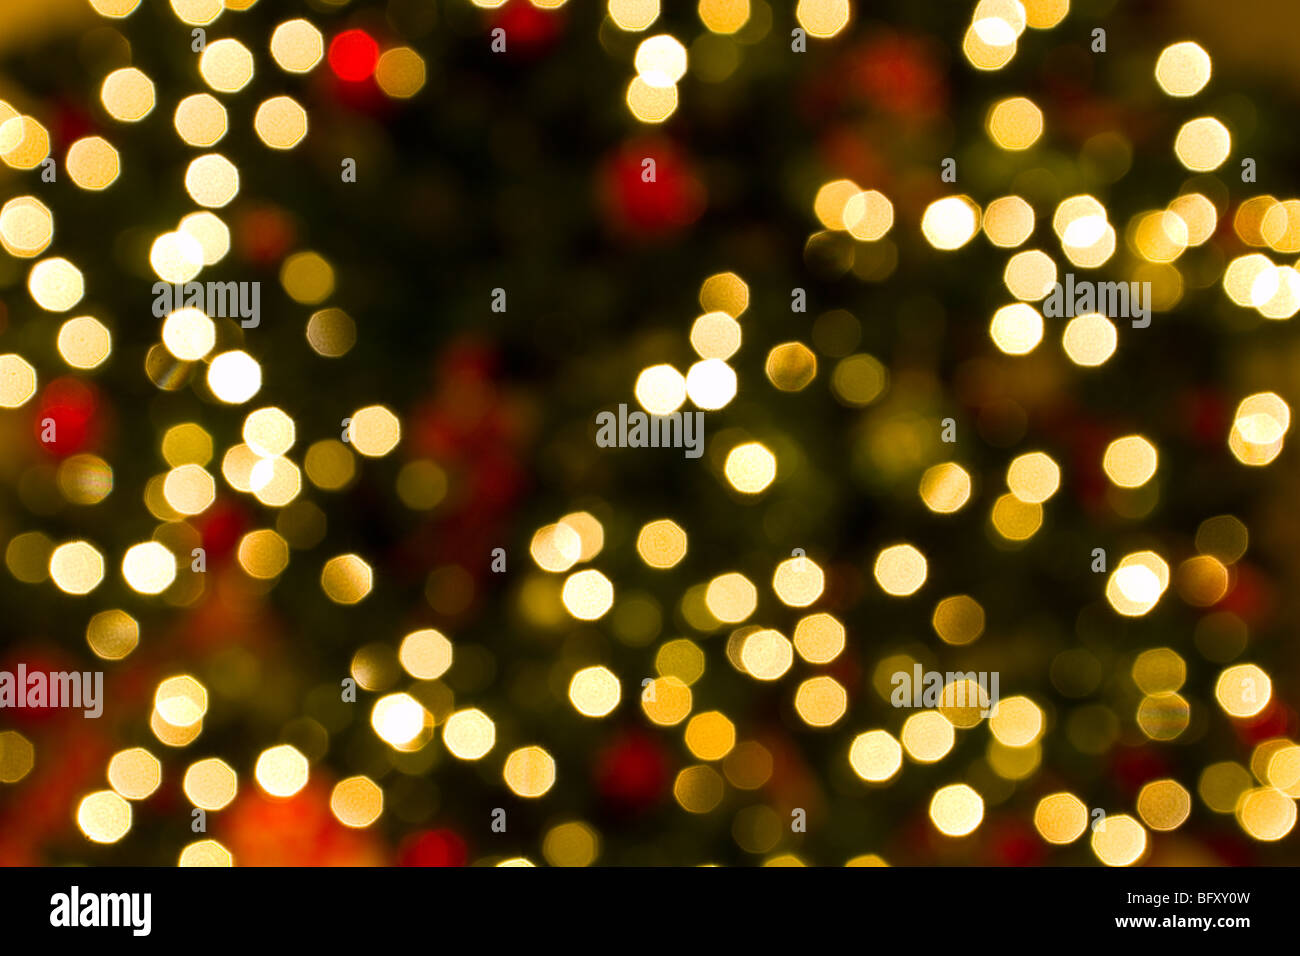 De-focused Christmas lights - Stock Image